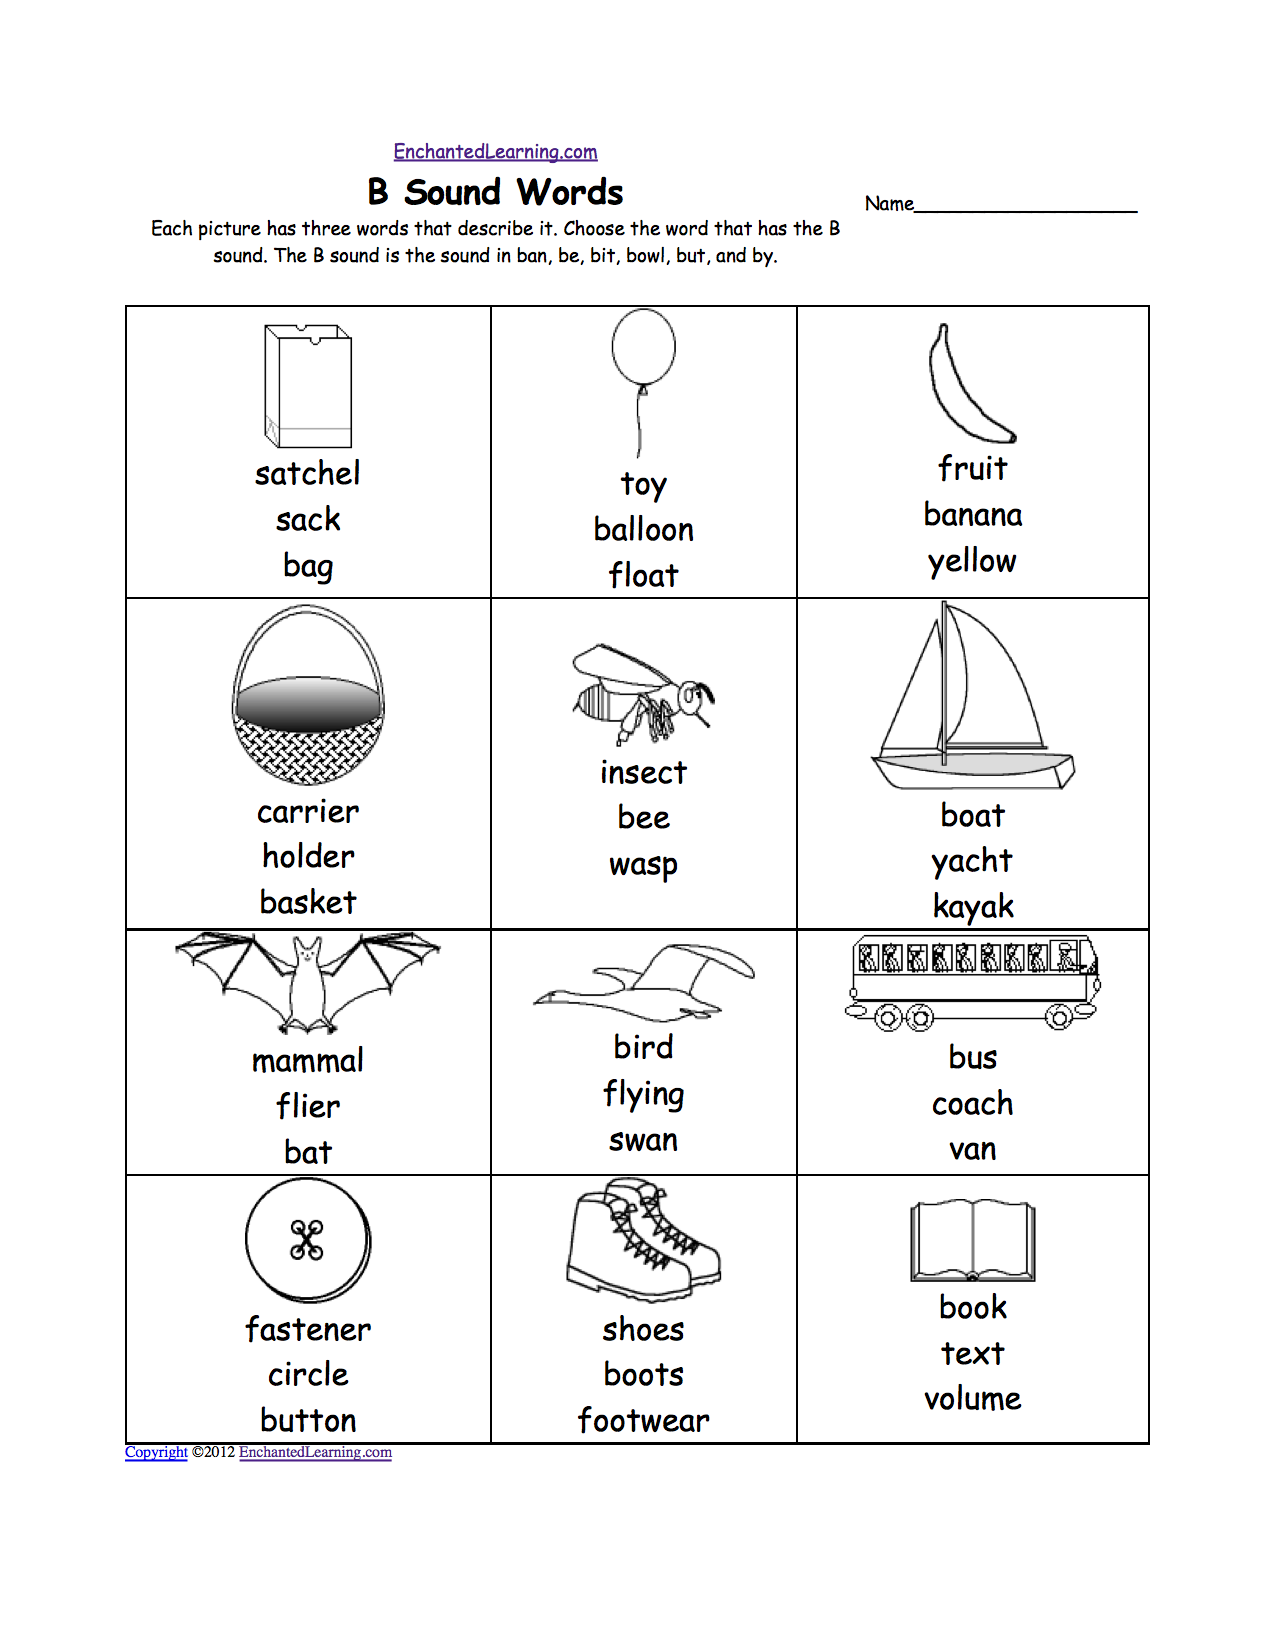 Weirdmailus  Unique Phonics Worksheets Multiple Choice Worksheets To Print  With Hot Quotbquot Sound Phonics Worksheet Multiple Choice Each Picture Has Three Words That Describe It Choose The Word That Has A Quotbquot Sound The Quotbquot Sound Is The Sound  With Adorable Free Printable Worksheets For St Grade Math Also Water Resources Worksheet In Addition Prefix Worksheet Rd Grade And Tracing Alphabets Worksheets As Well As Story Analysis Worksheet Additionally The Highwayman Worksheets From Enchantedlearningcom With Weirdmailus  Hot Phonics Worksheets Multiple Choice Worksheets To Print  With Adorable Quotbquot Sound Phonics Worksheet Multiple Choice Each Picture Has Three Words That Describe It Choose The Word That Has A Quotbquot Sound The Quotbquot Sound Is The Sound  And Unique Free Printable Worksheets For St Grade Math Also Water Resources Worksheet In Addition Prefix Worksheet Rd Grade From Enchantedlearningcom